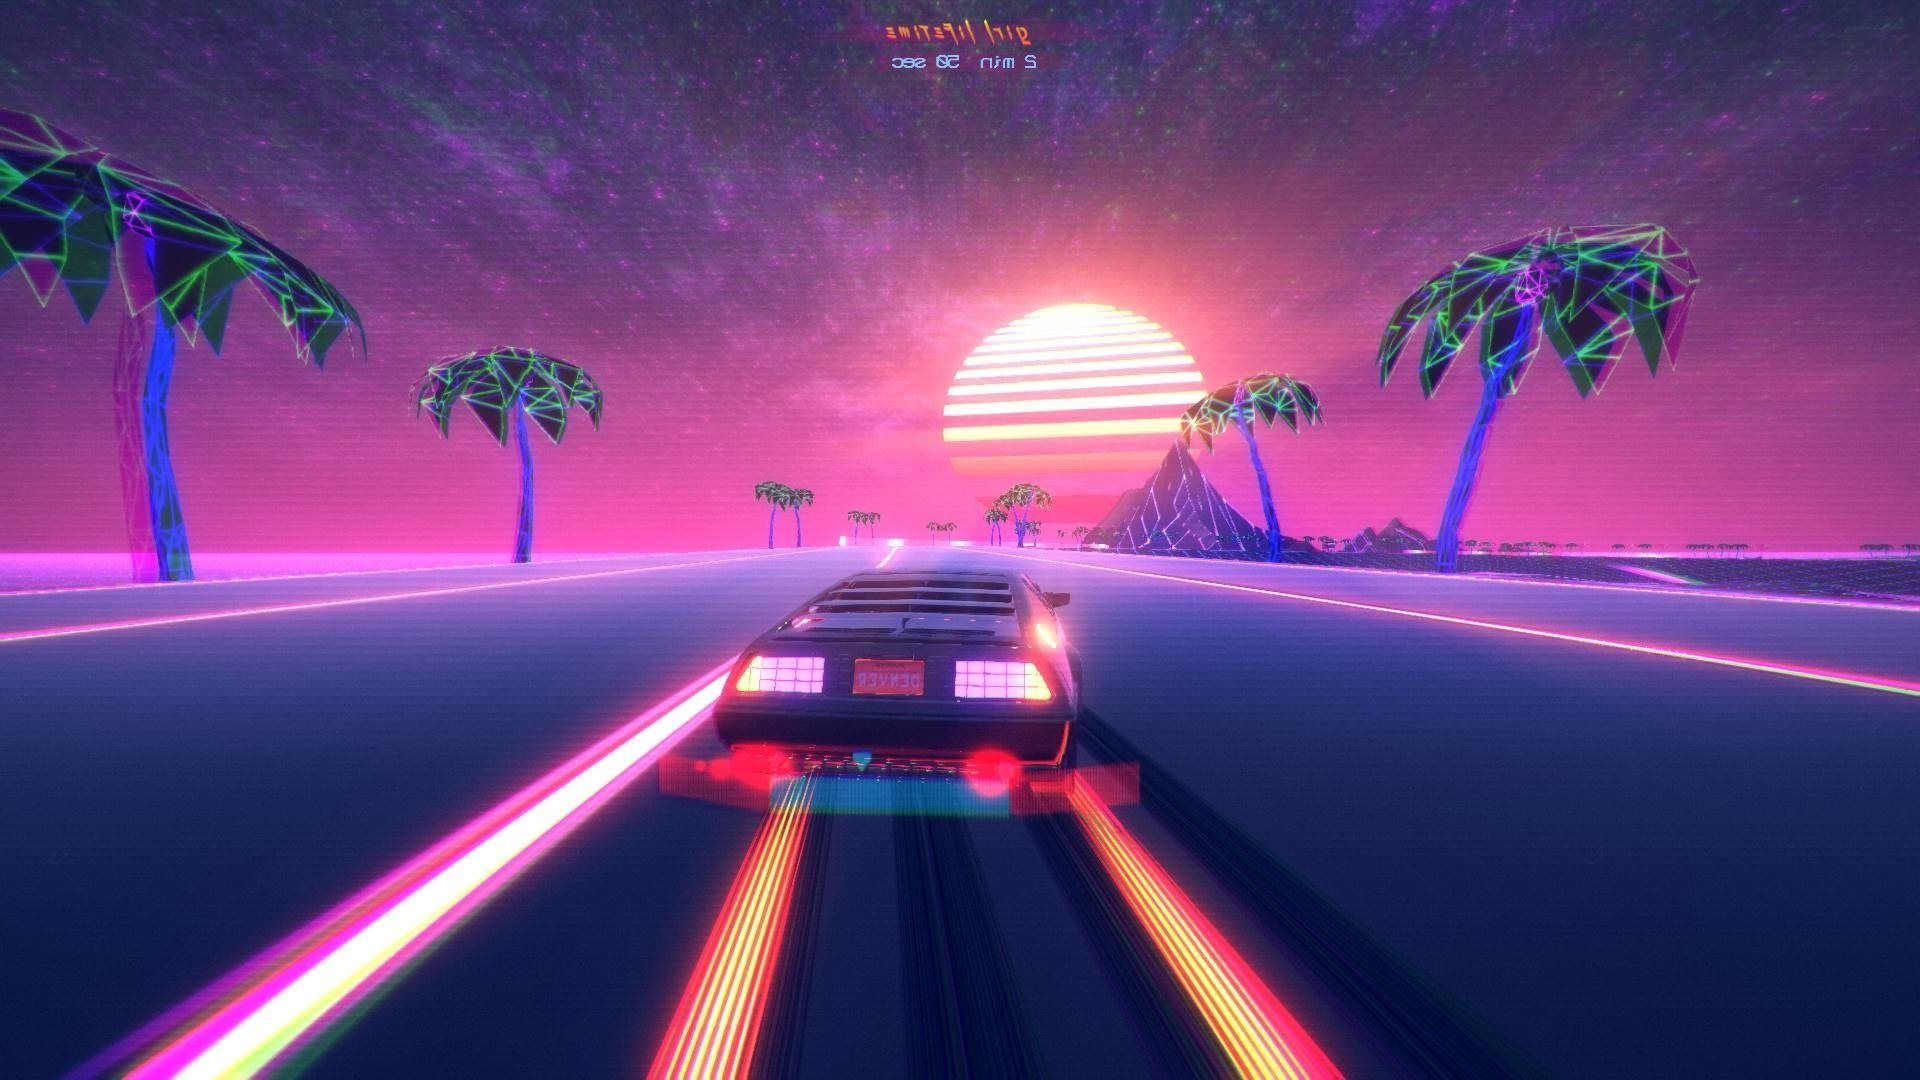 1920x1080 Outrun Wallpaper Hd Groovy Wallpapers - Out Drive (#310334) - HD ...